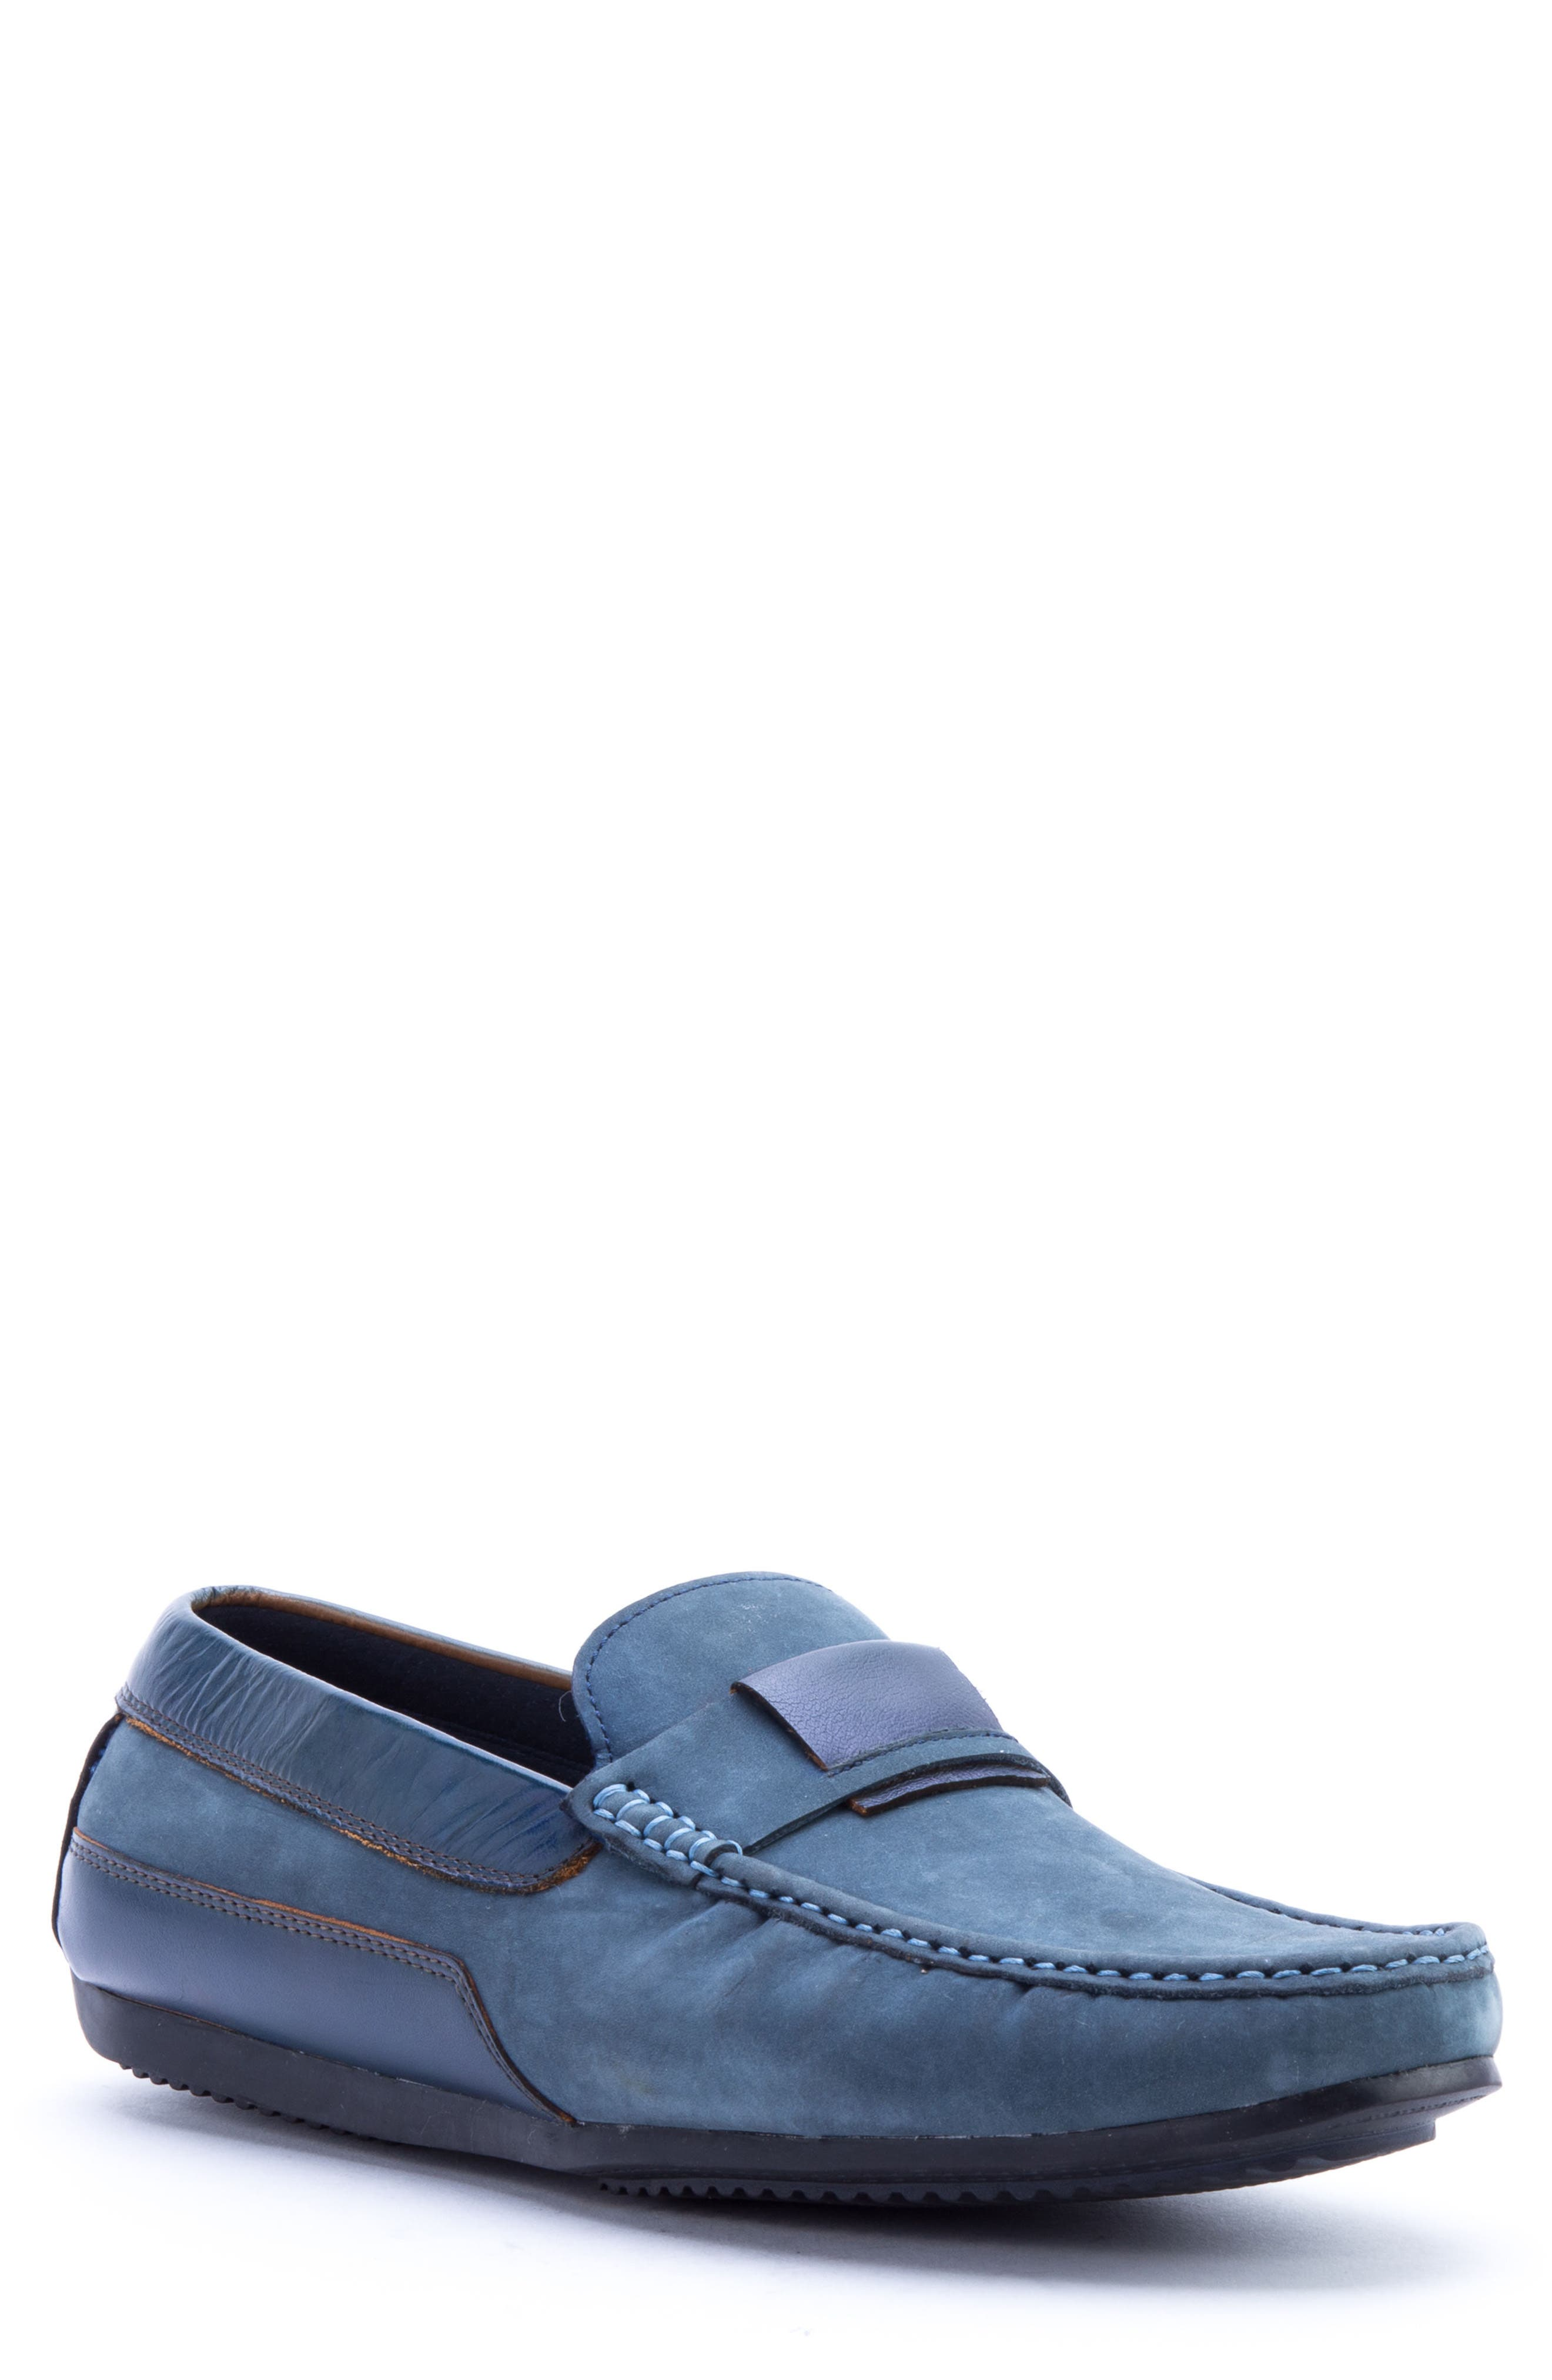 Zanzara Seurat Driving Loafer- Blue